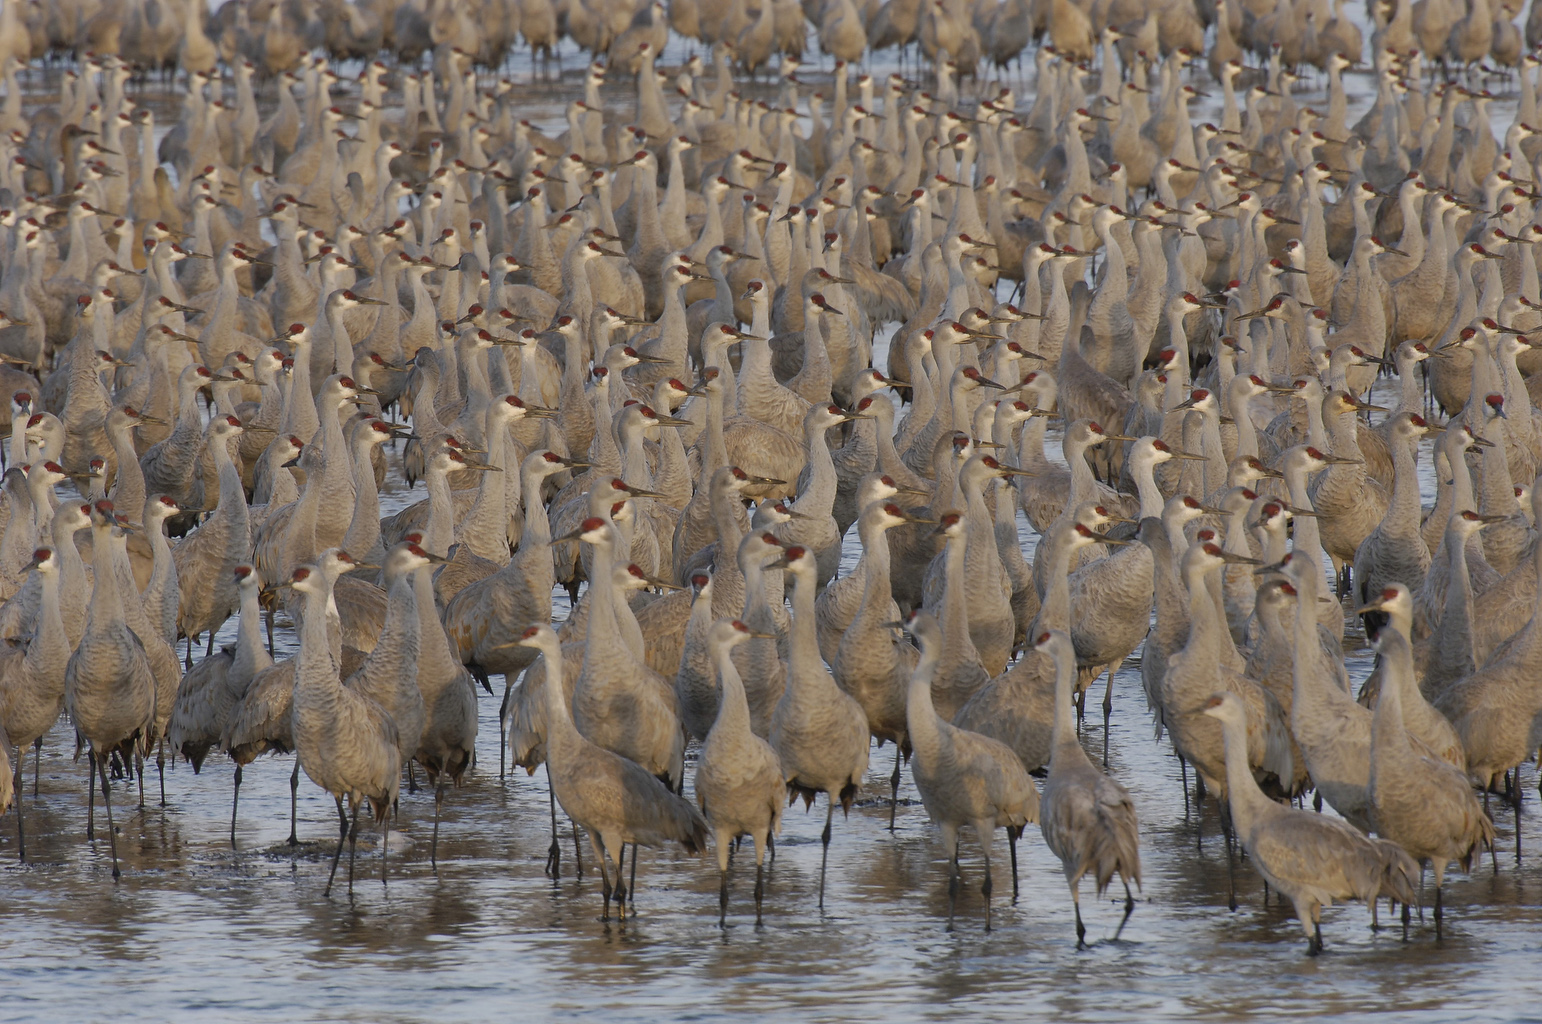 Sandhill cranes stand shoulder to shoulder on a river roost at first light. (Michael Forsberg)